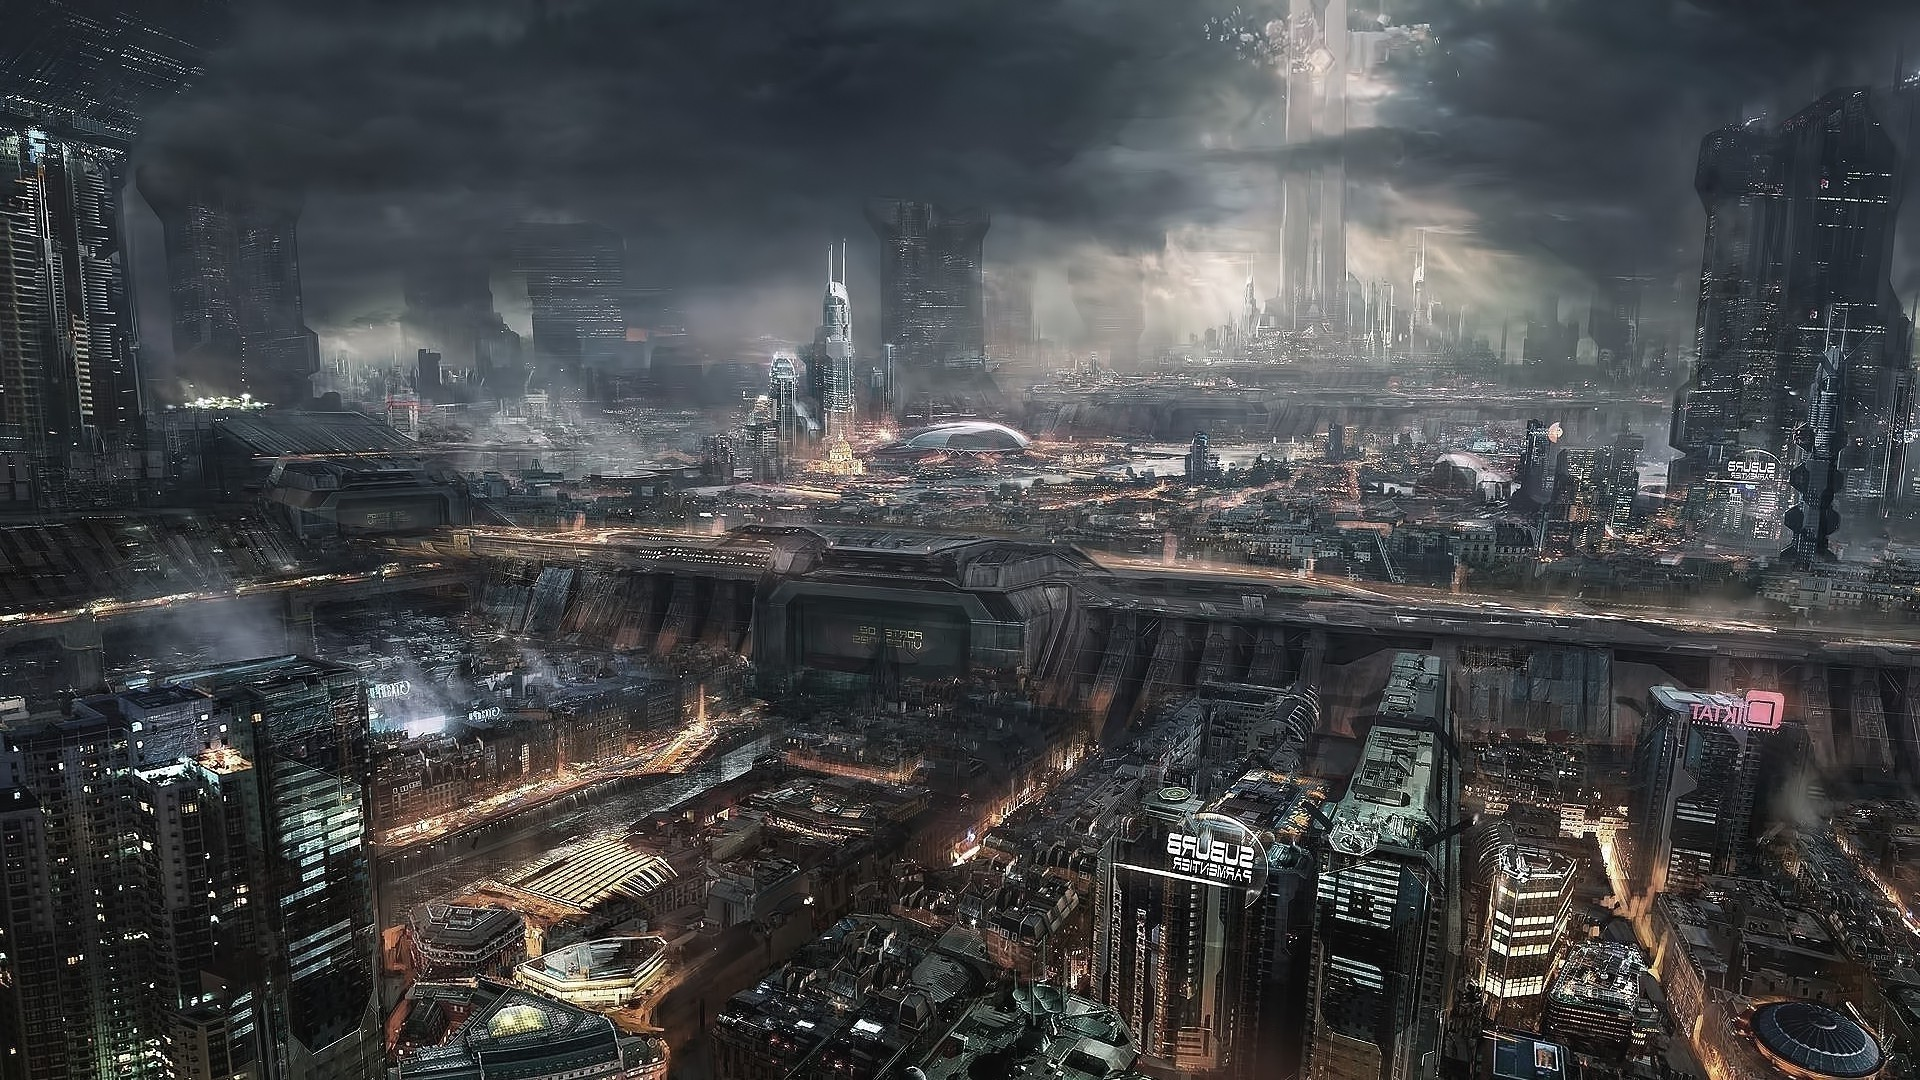 Res: 1920x1080, Title : fantasy art, steampunk, city wallpapers hd / desktop and mobile.  Dimension : 1920 x 1080. File Type : JPG/JPEG